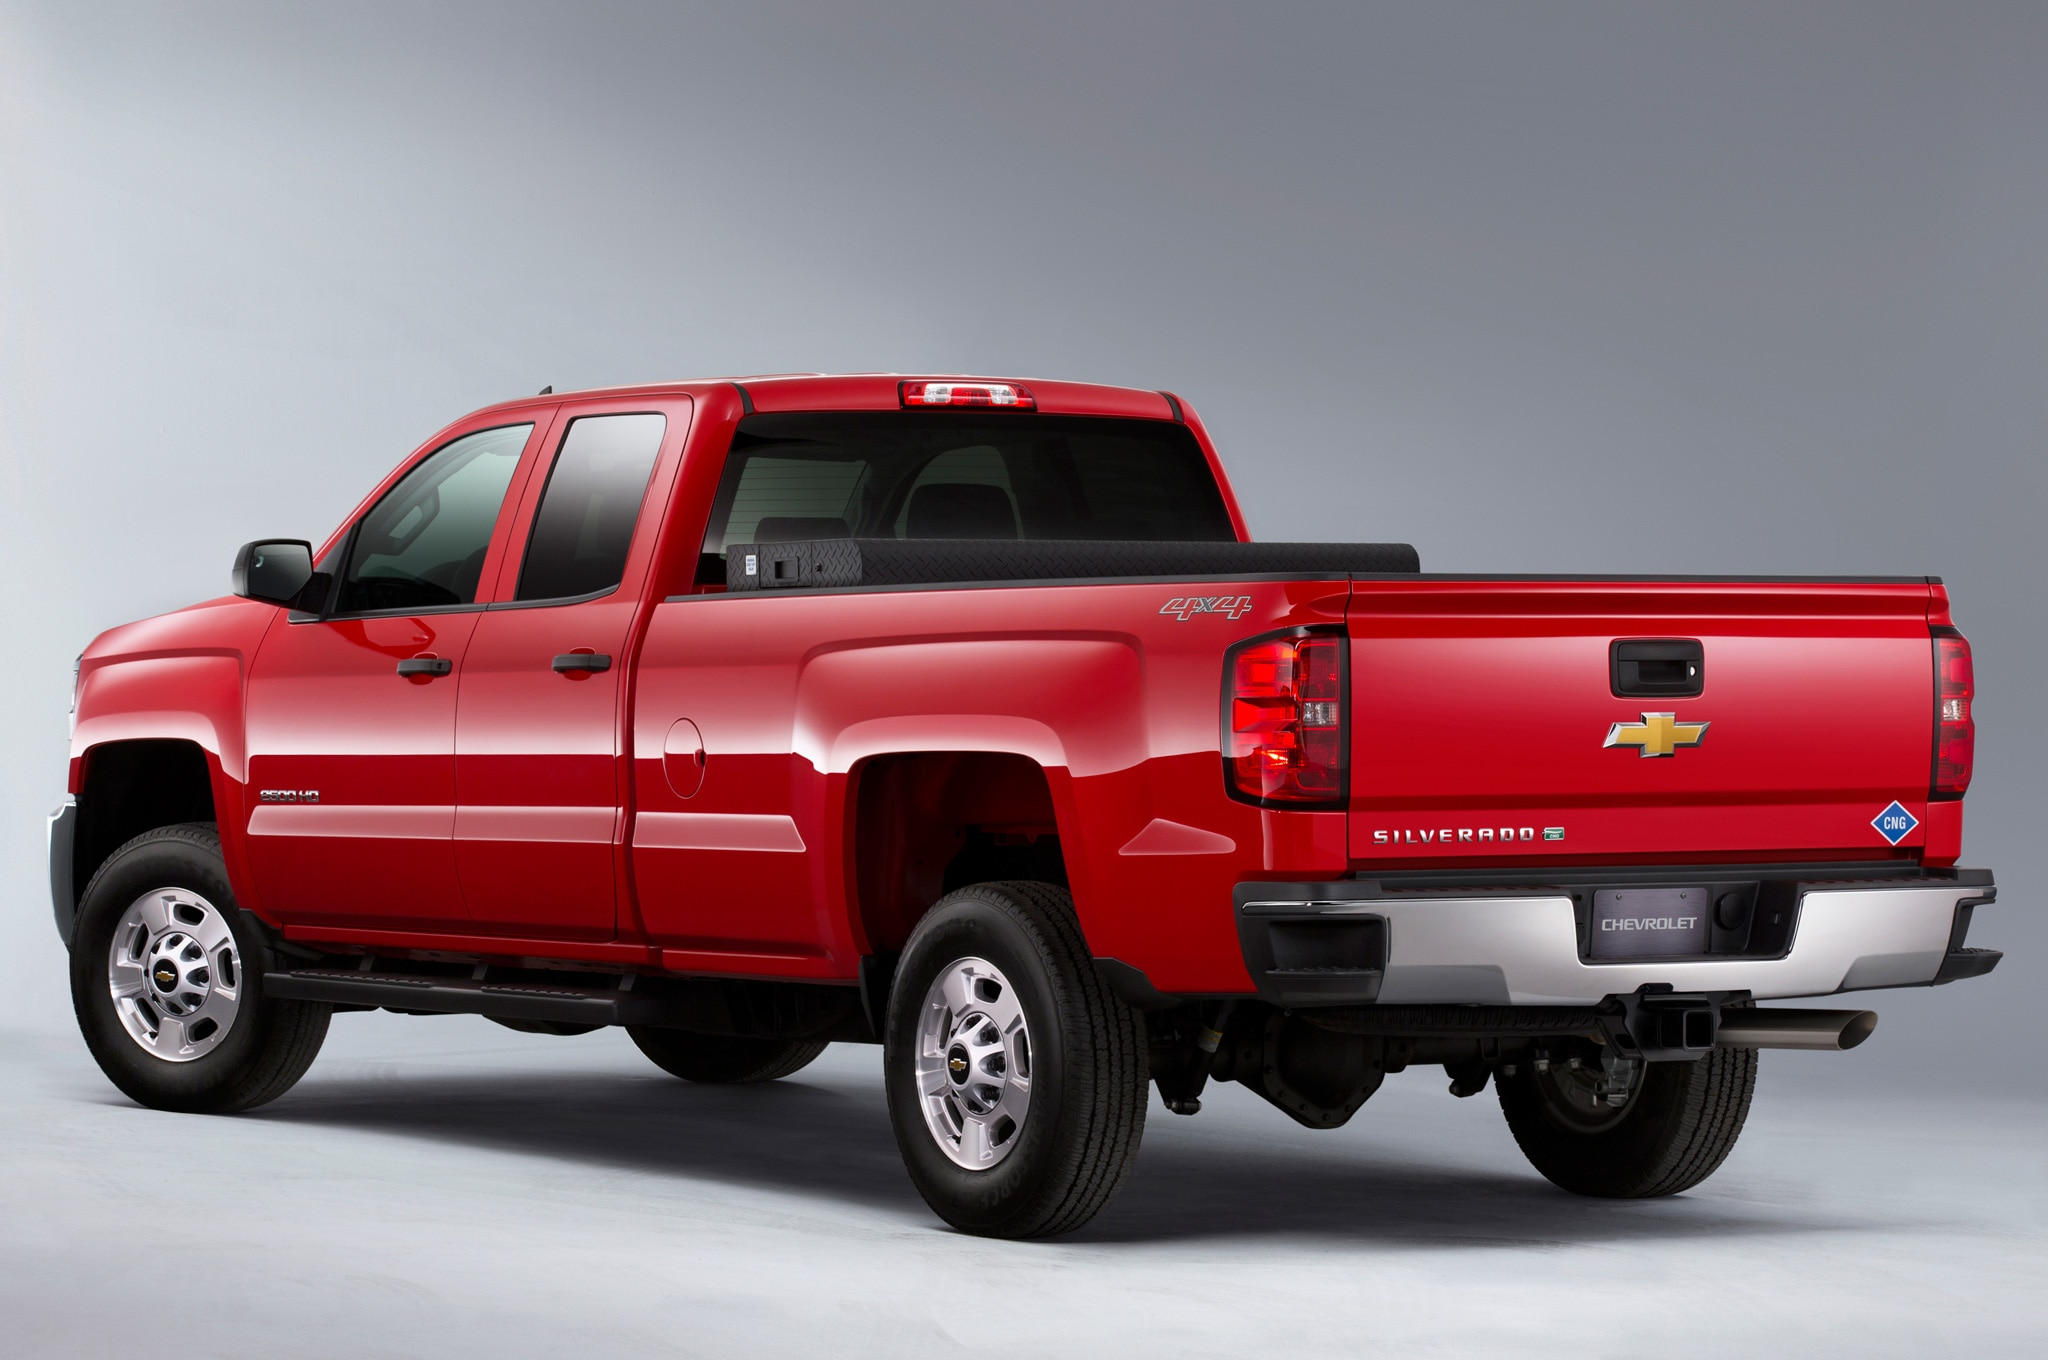 2015 Chevrolet Silverado 2500HD BiFuel rear view